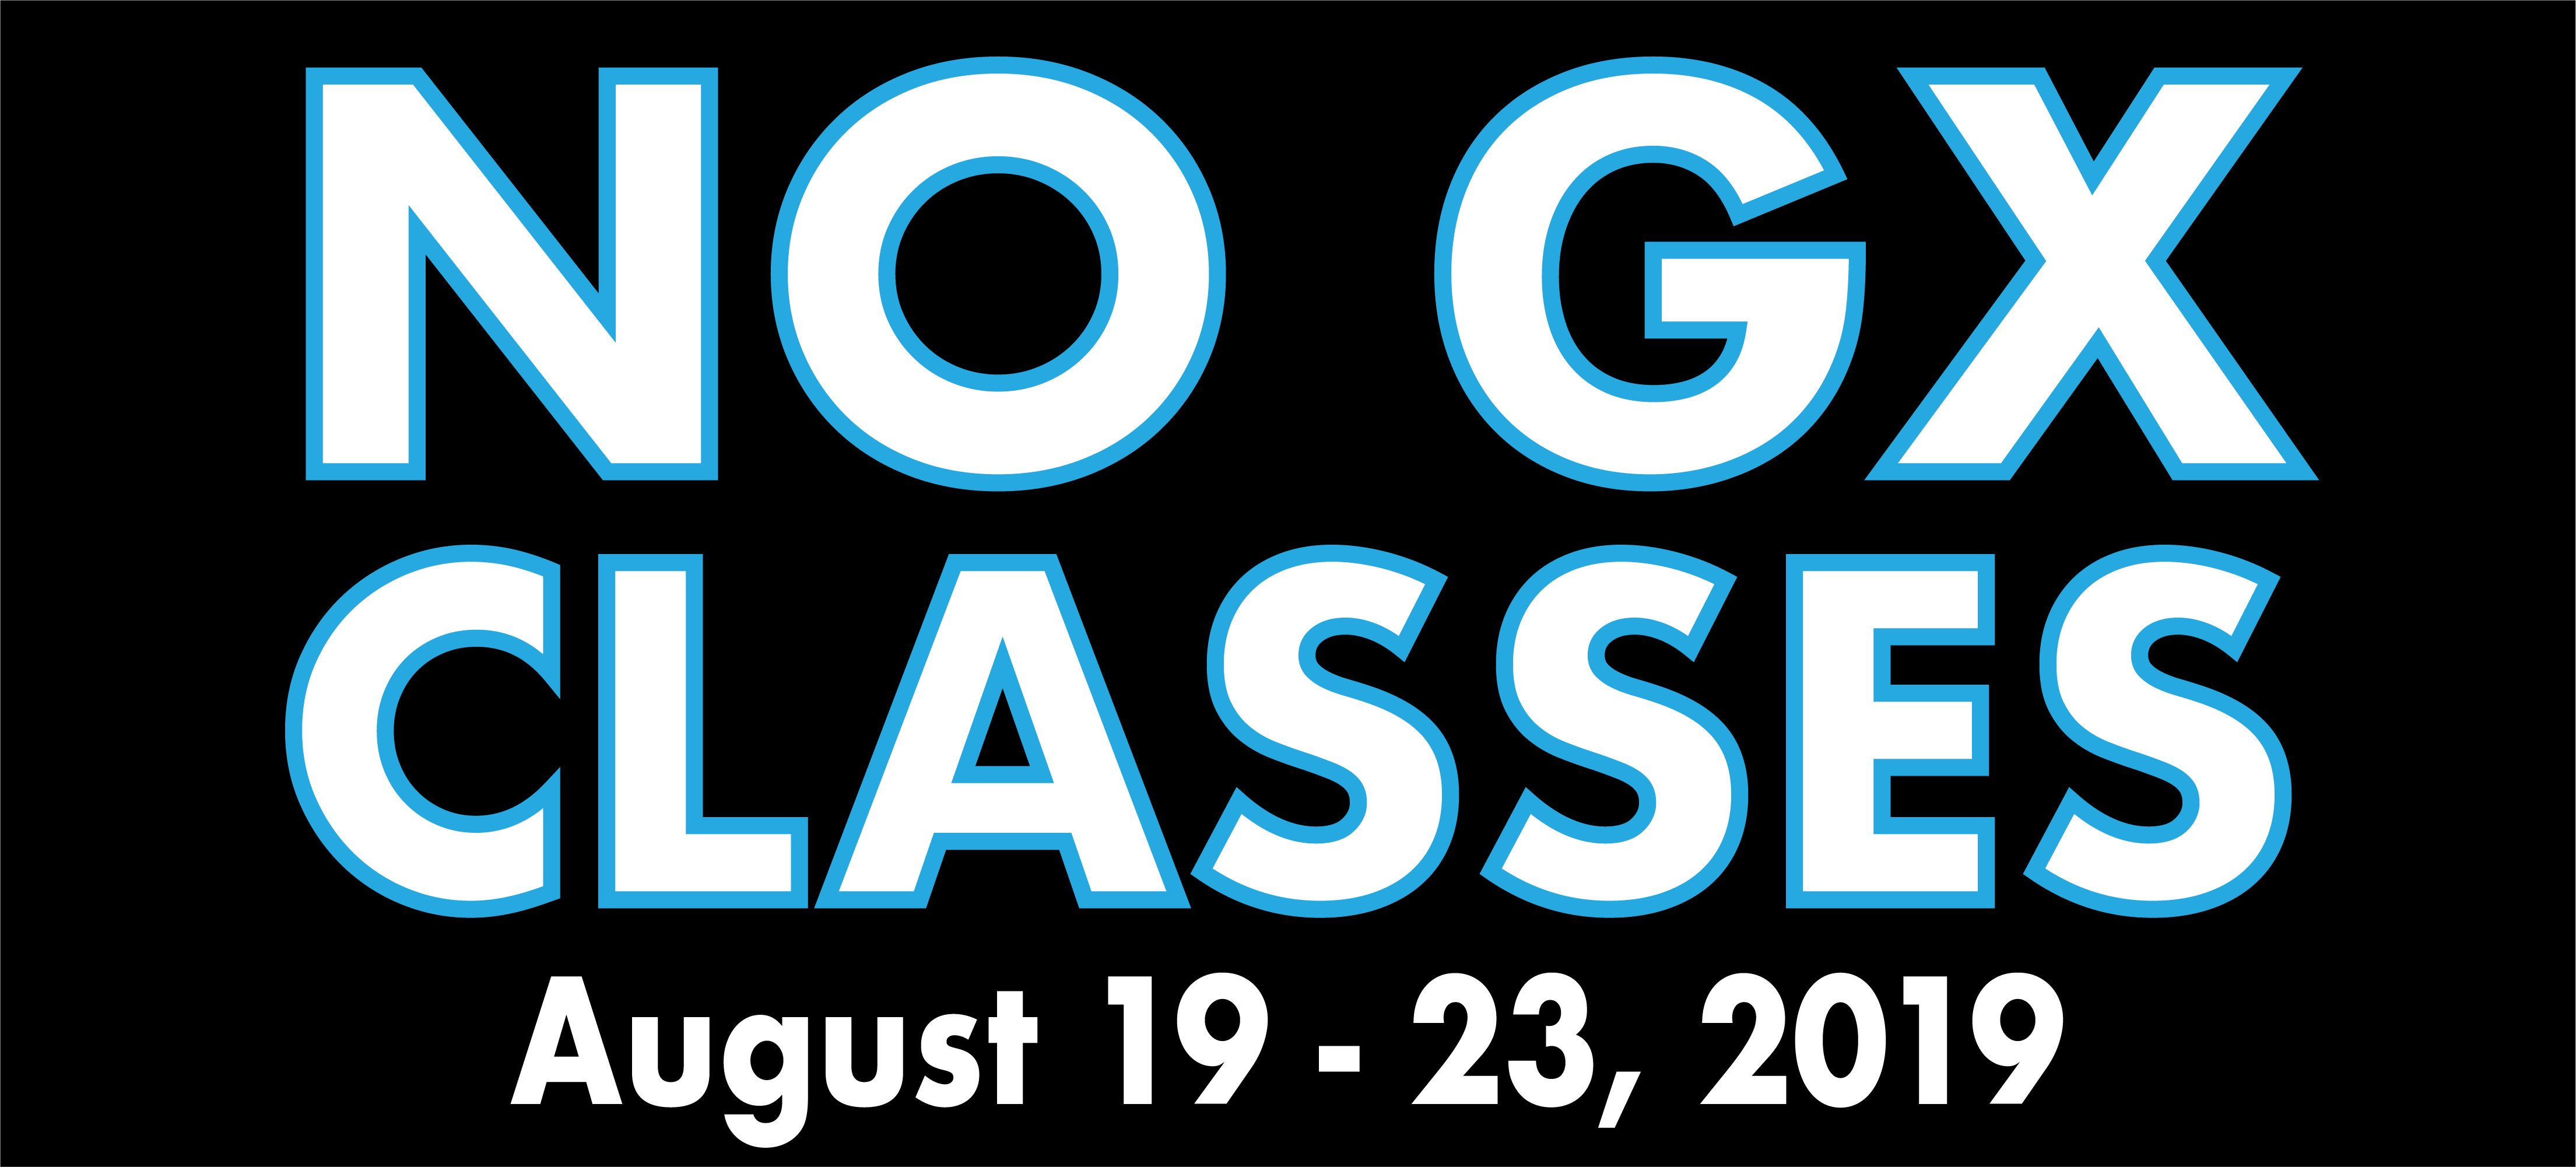 There will be no GX Classes held at the Hosaeus Fitness Center Aug. 19 - 23, 2019 as we get ready for the fall semester.